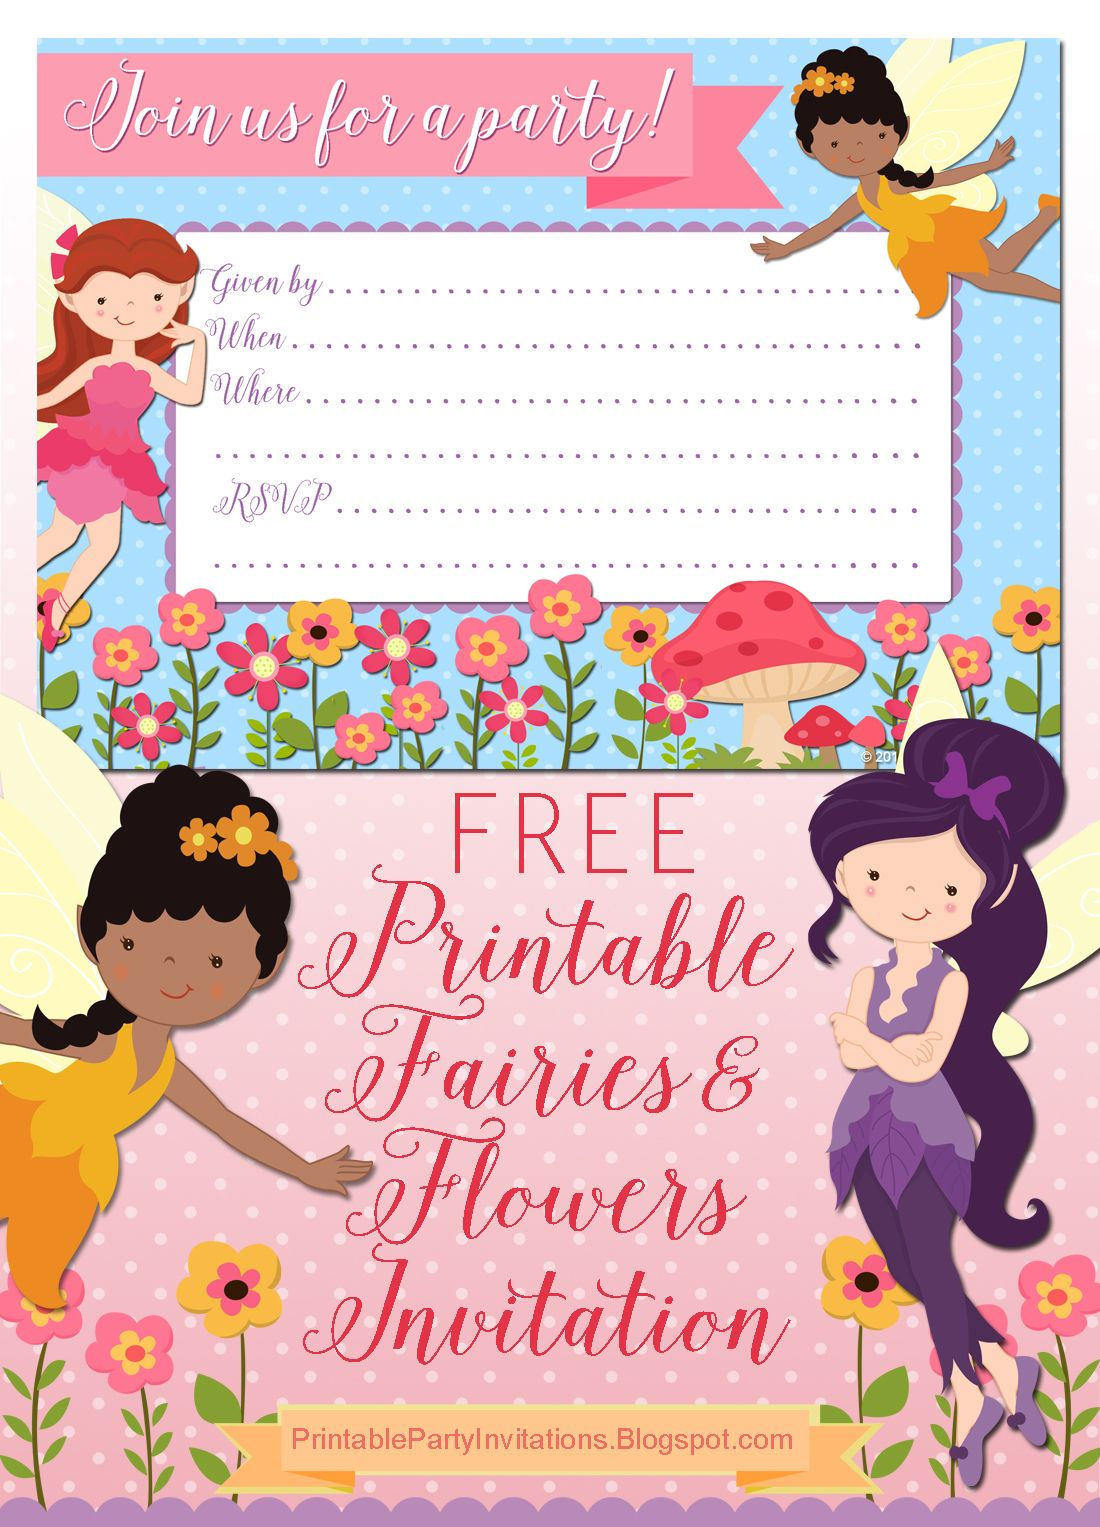 FREE Printable Fairies And Flowers Party Invitation